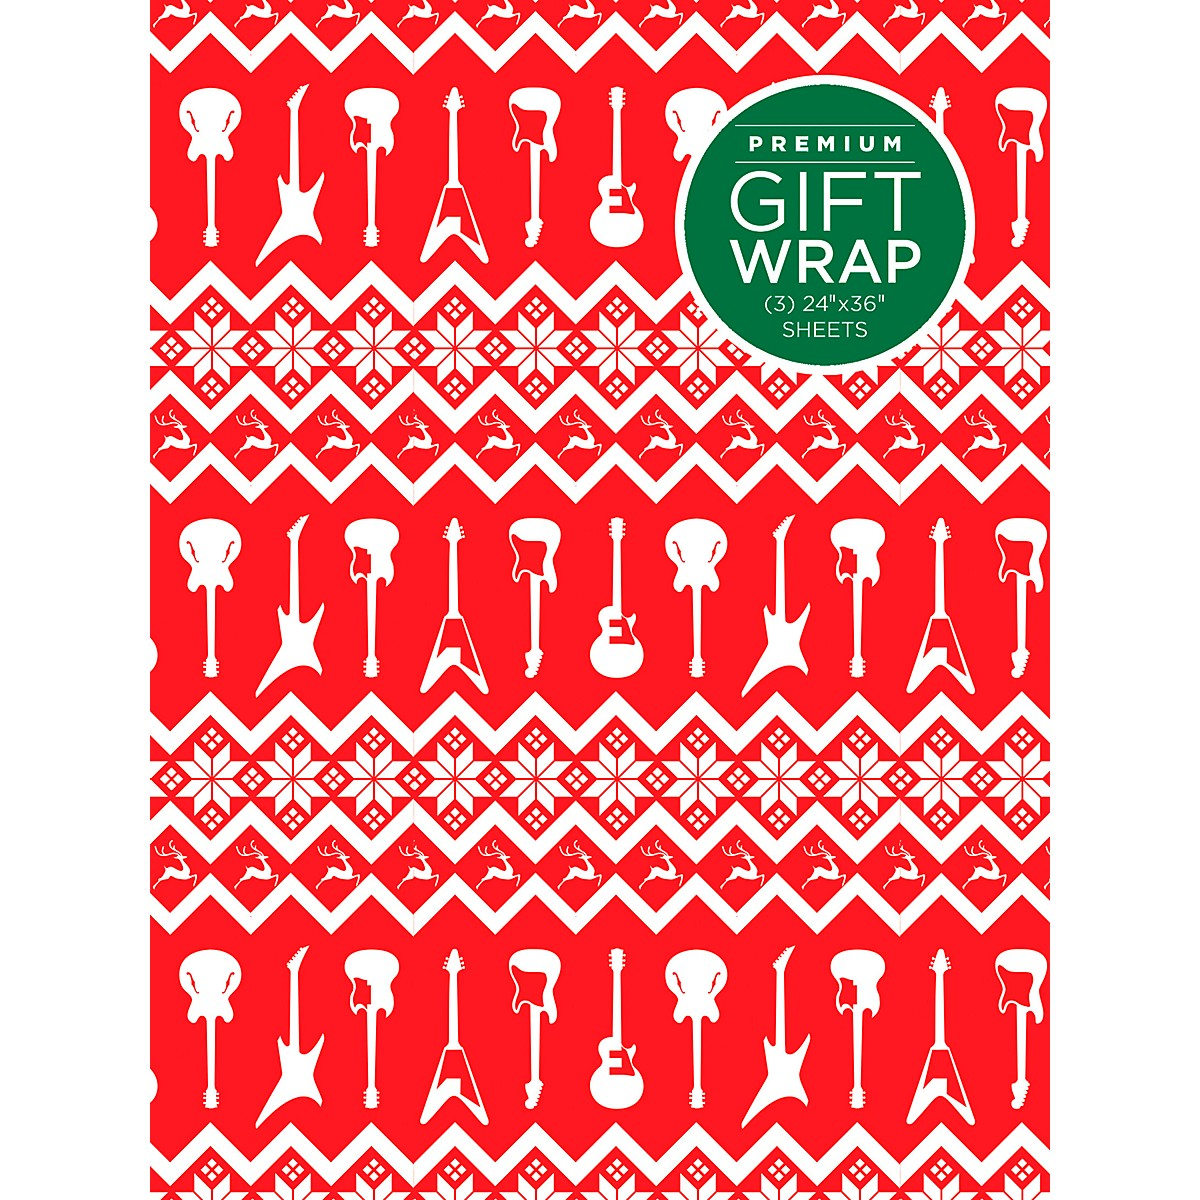 Hal Leonard Red And White Guitar Premium Gift Wrapping Paper